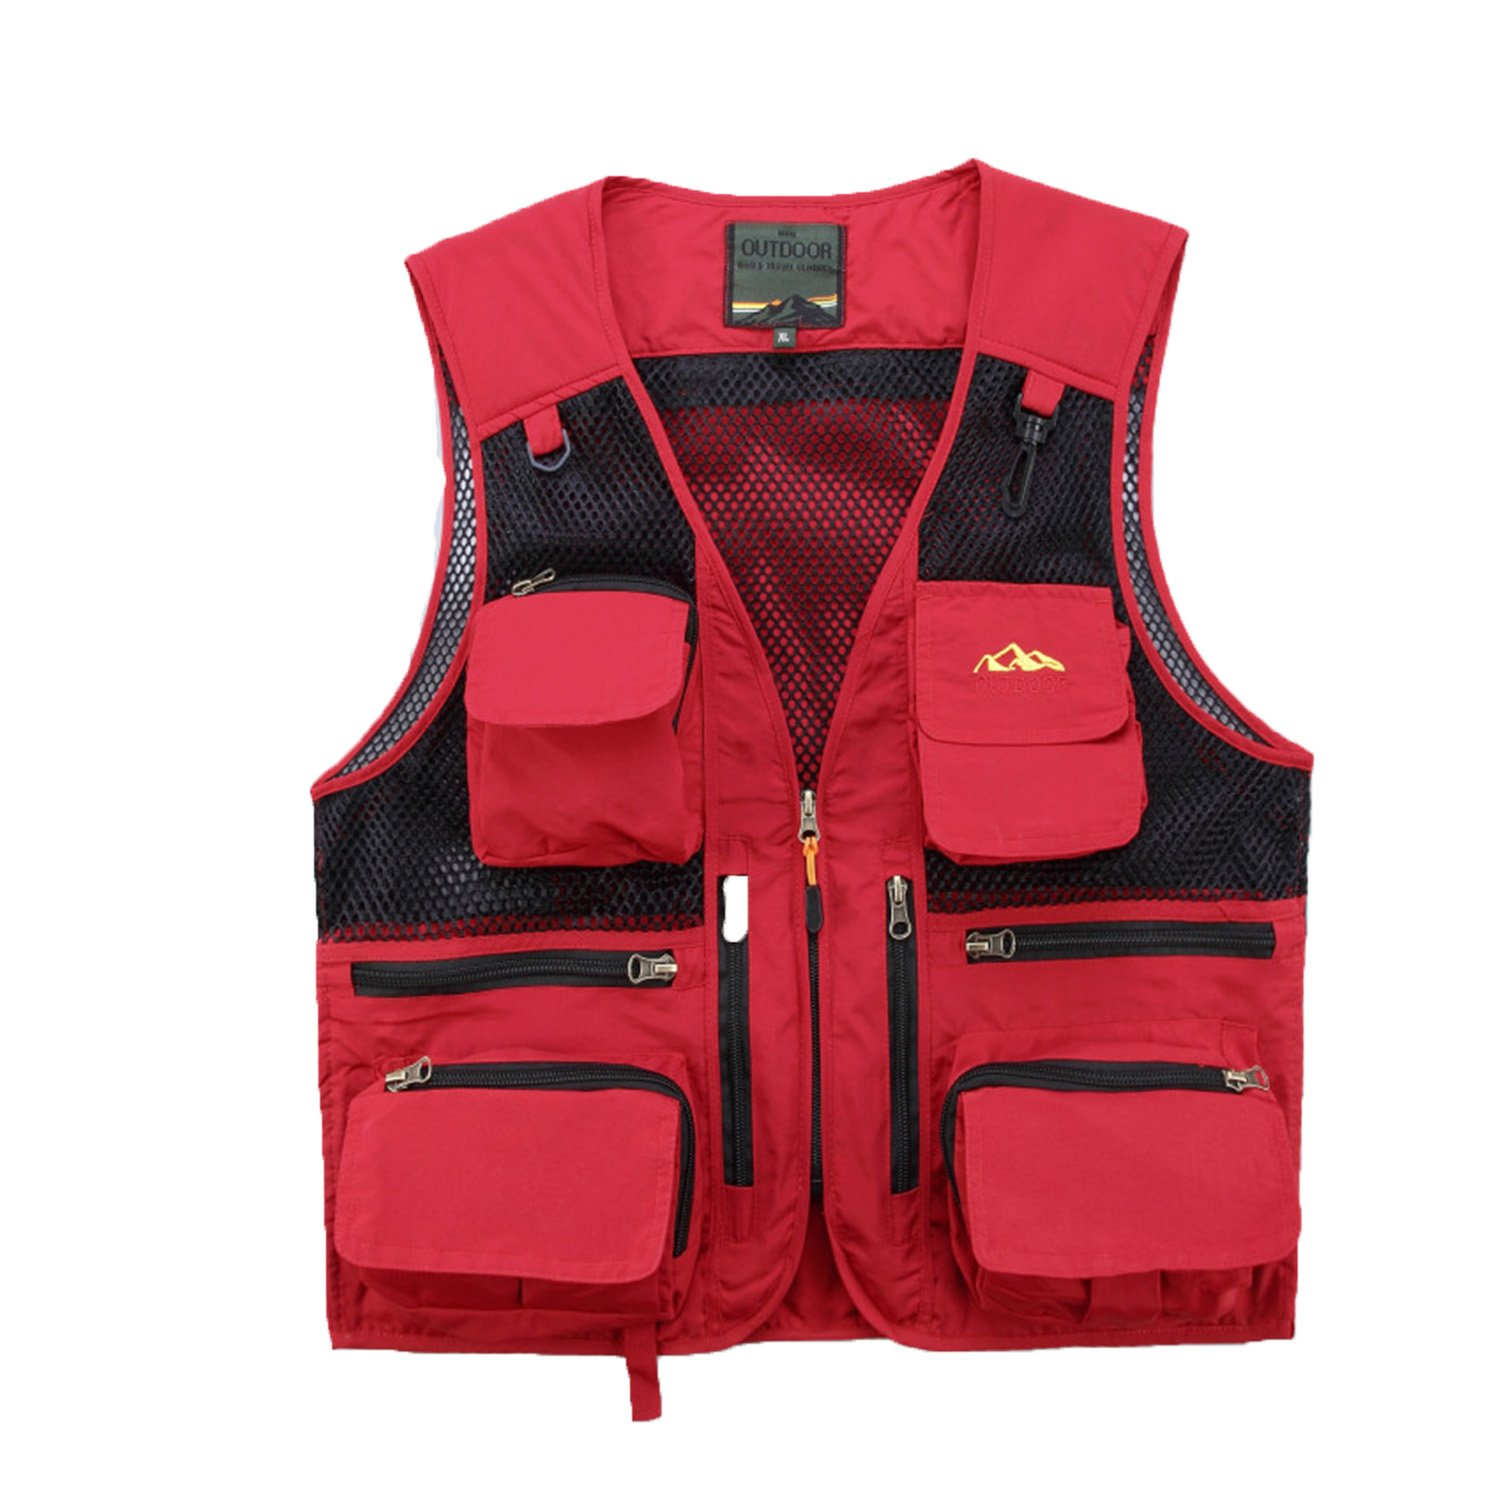 IyMoo Mens Mesh Fishing Vest Multi Pockets Photography Outdoor Climbing Causual Tactical Vest-Multi Use Vest